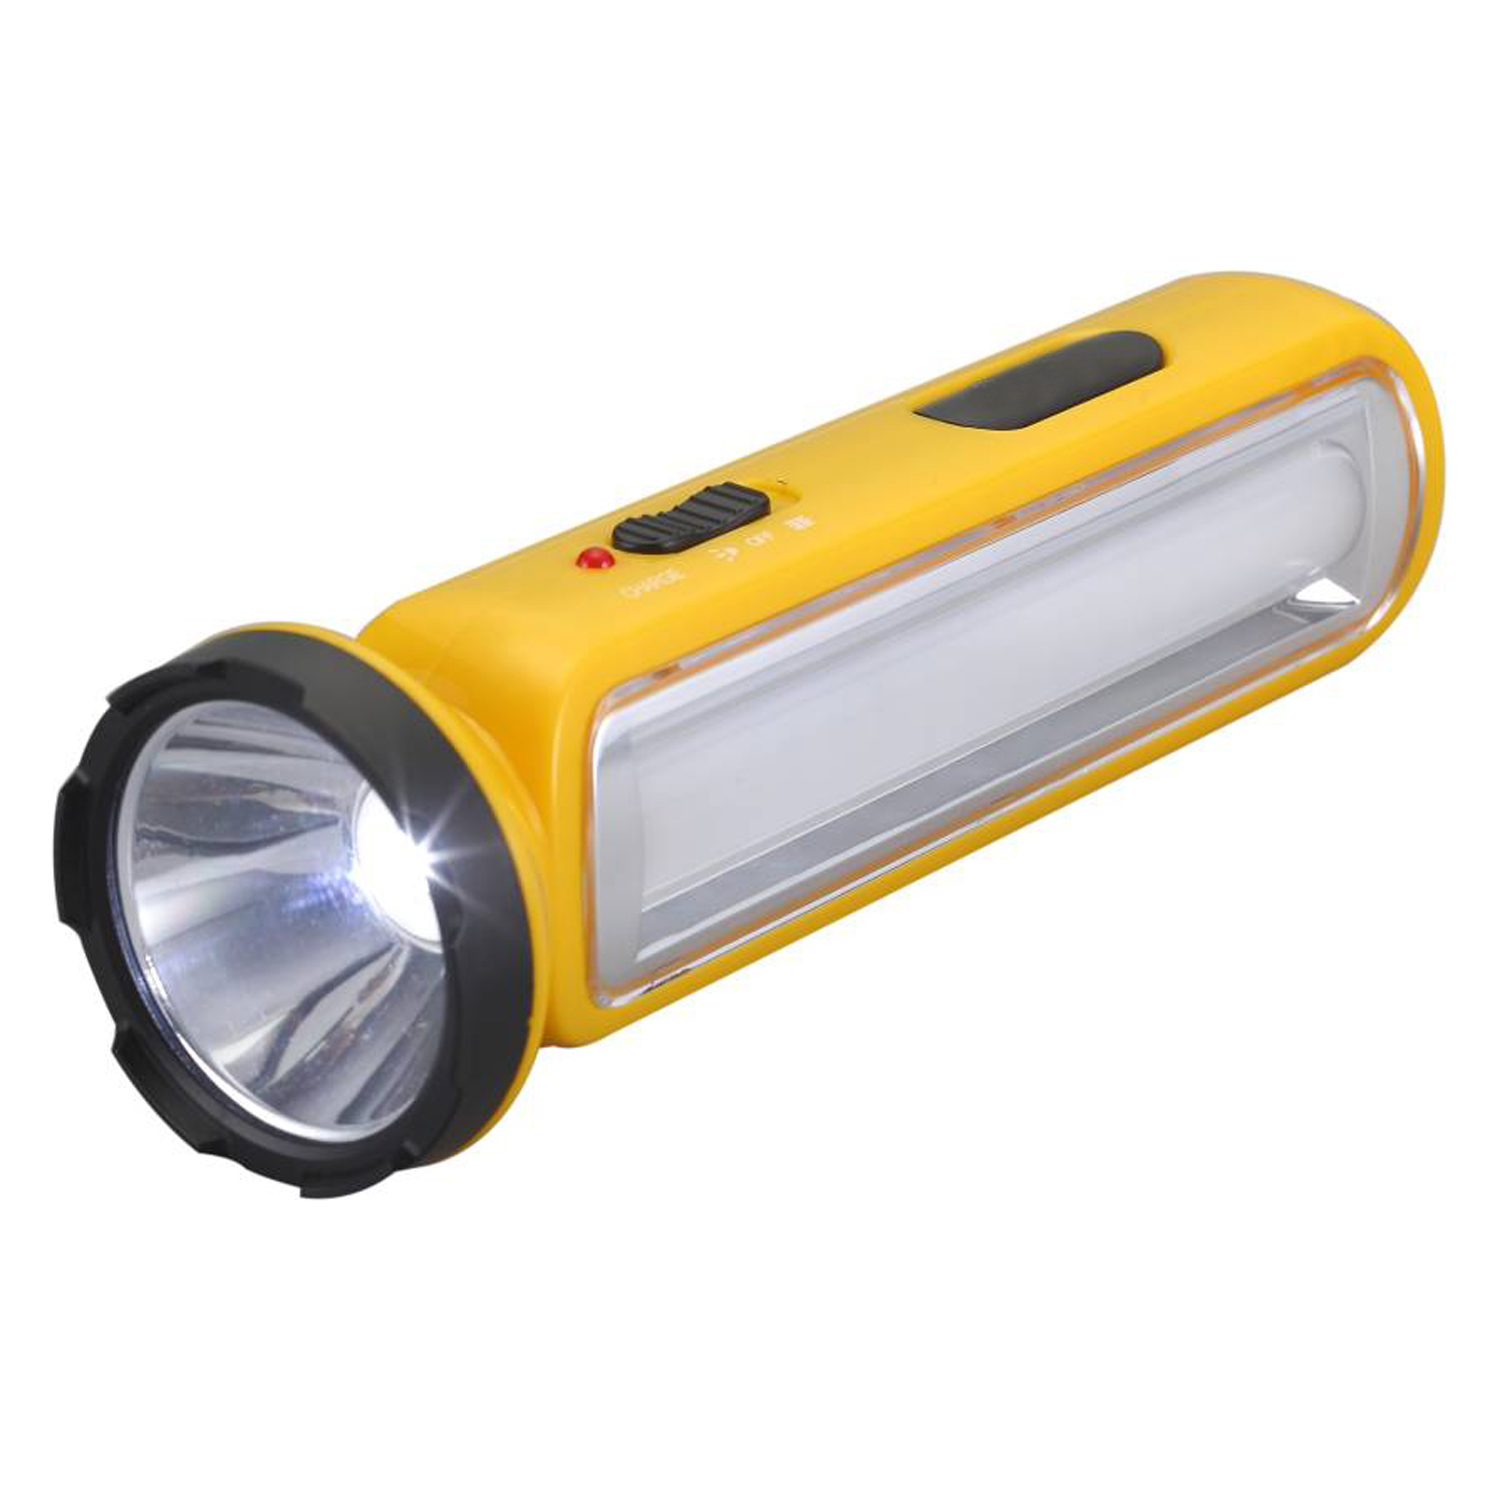 Stylopunk 1 Big LED Bright Light Rechargeable emergency light With Flash Torch light 24Energy EN 655   Yellow